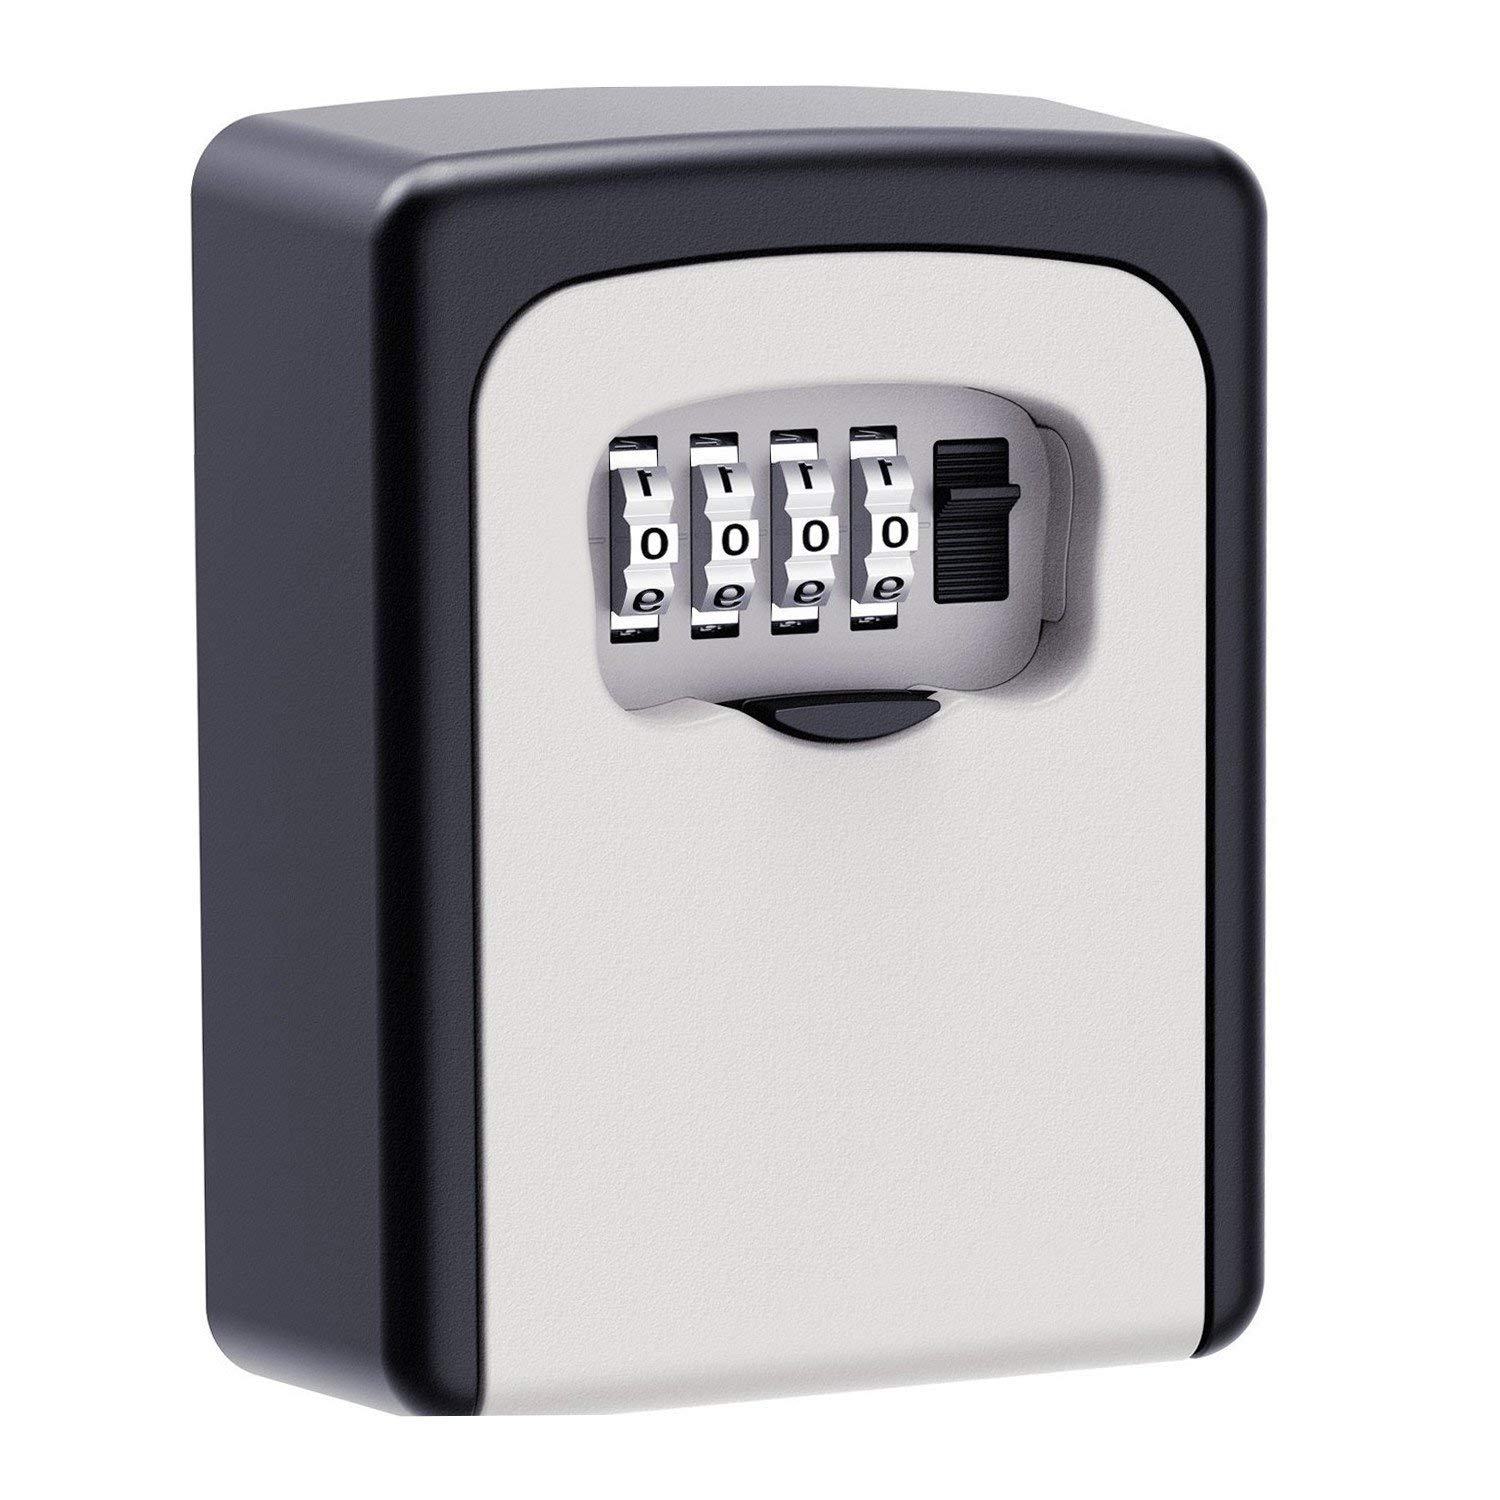 Search For Flights Key Lock Box Wall Mounted Aluminum Alloy Key Safe Box Weatherproof 4 Digit Combination Key Storage Lock Box Indoor Outdoor Kleidung & Accessoires